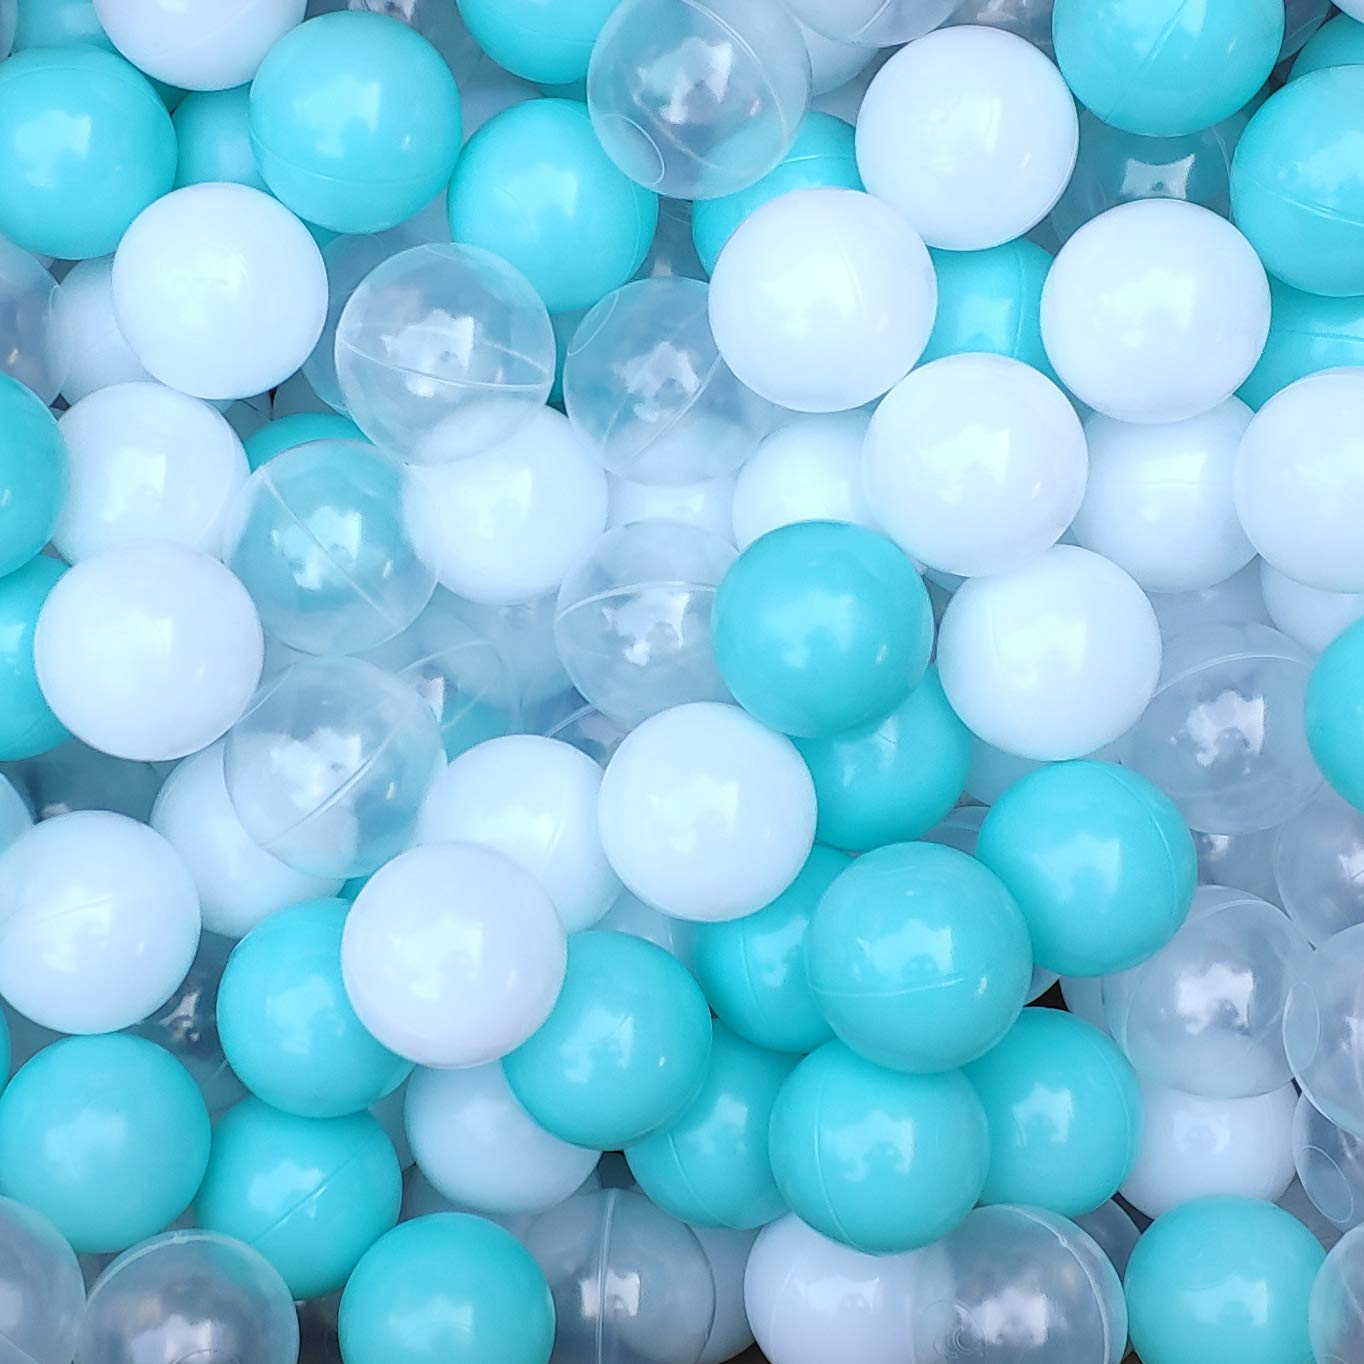 Thenese Pit Balls for Kids 400 pcs 2.15 Inches Thicken Soft Plastic Crush Proof Ball Pit Balls BPA Phthalate Free Baby Toddler Toy Ball with 3 Color White Clear and Green